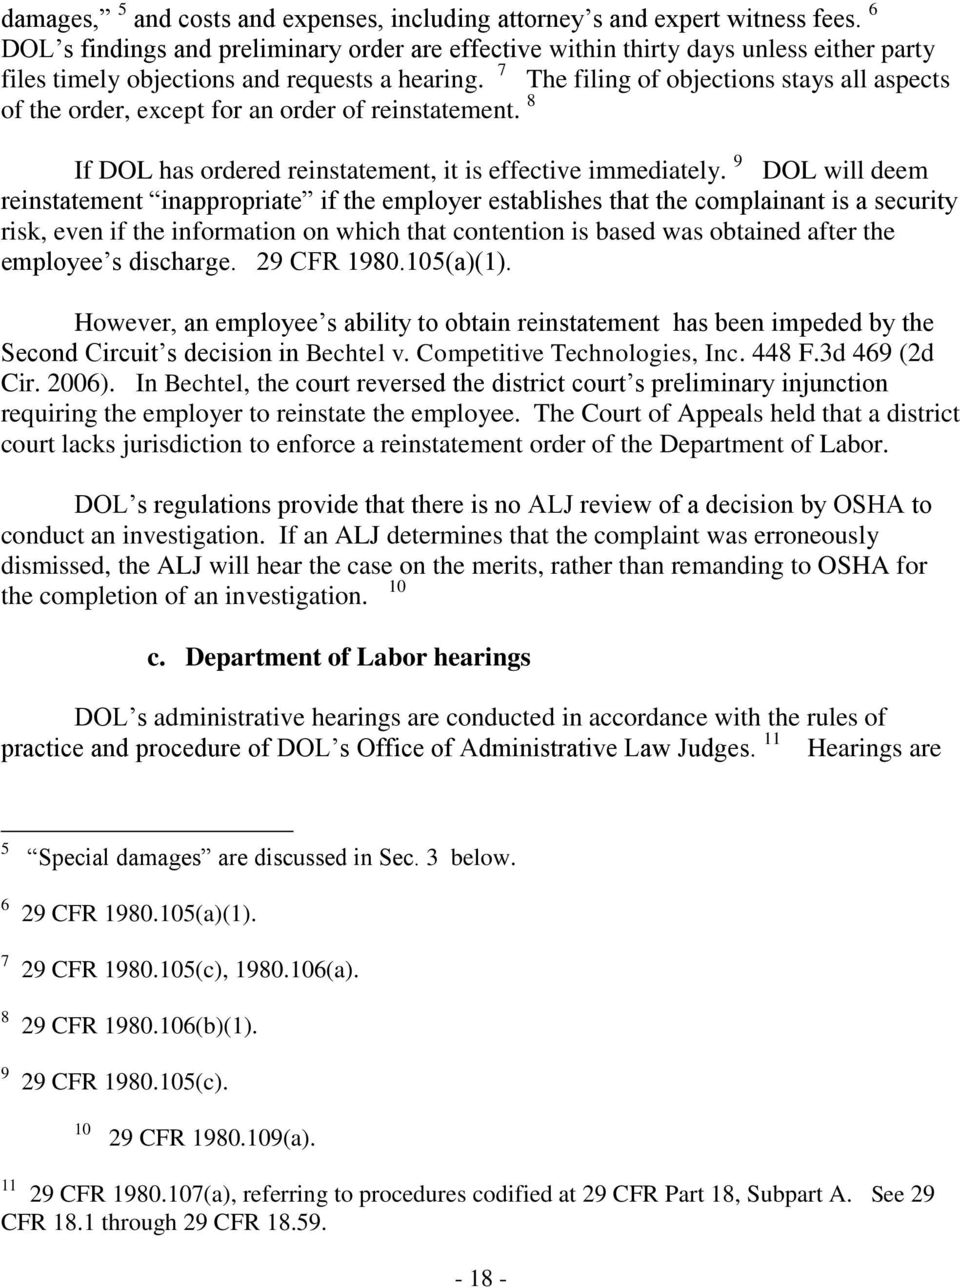 7 The filing of objections stays all aspects of the order, except for an order of reinstatement. 8 If DOL has ordered reinstatement, it is effective immediately.